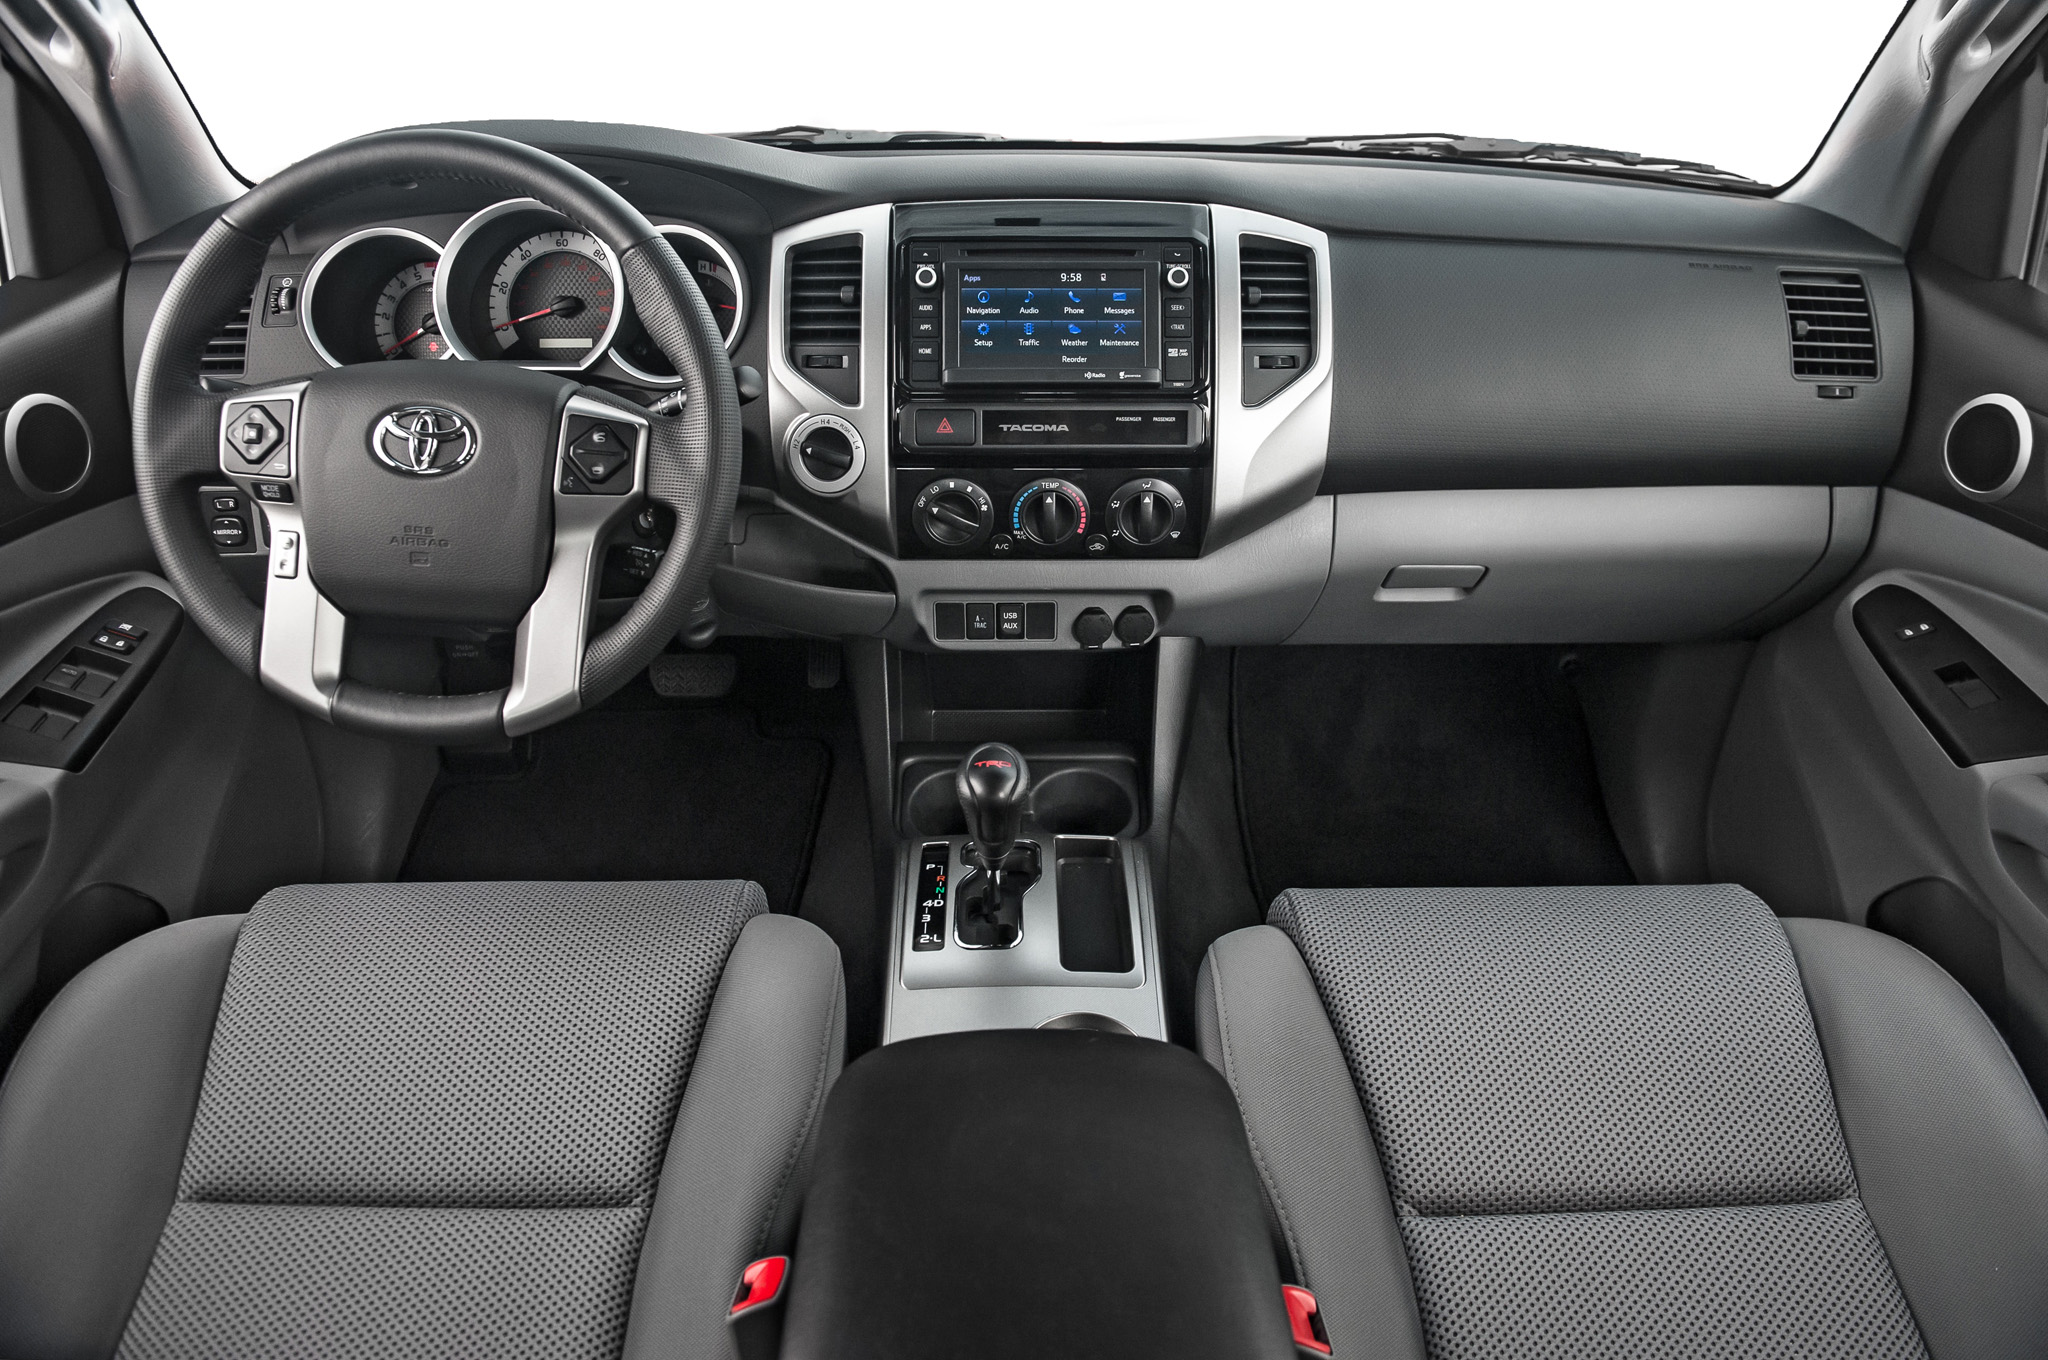 Exceptional 2015 Toyota Tacoma Interior Pictures Gallery